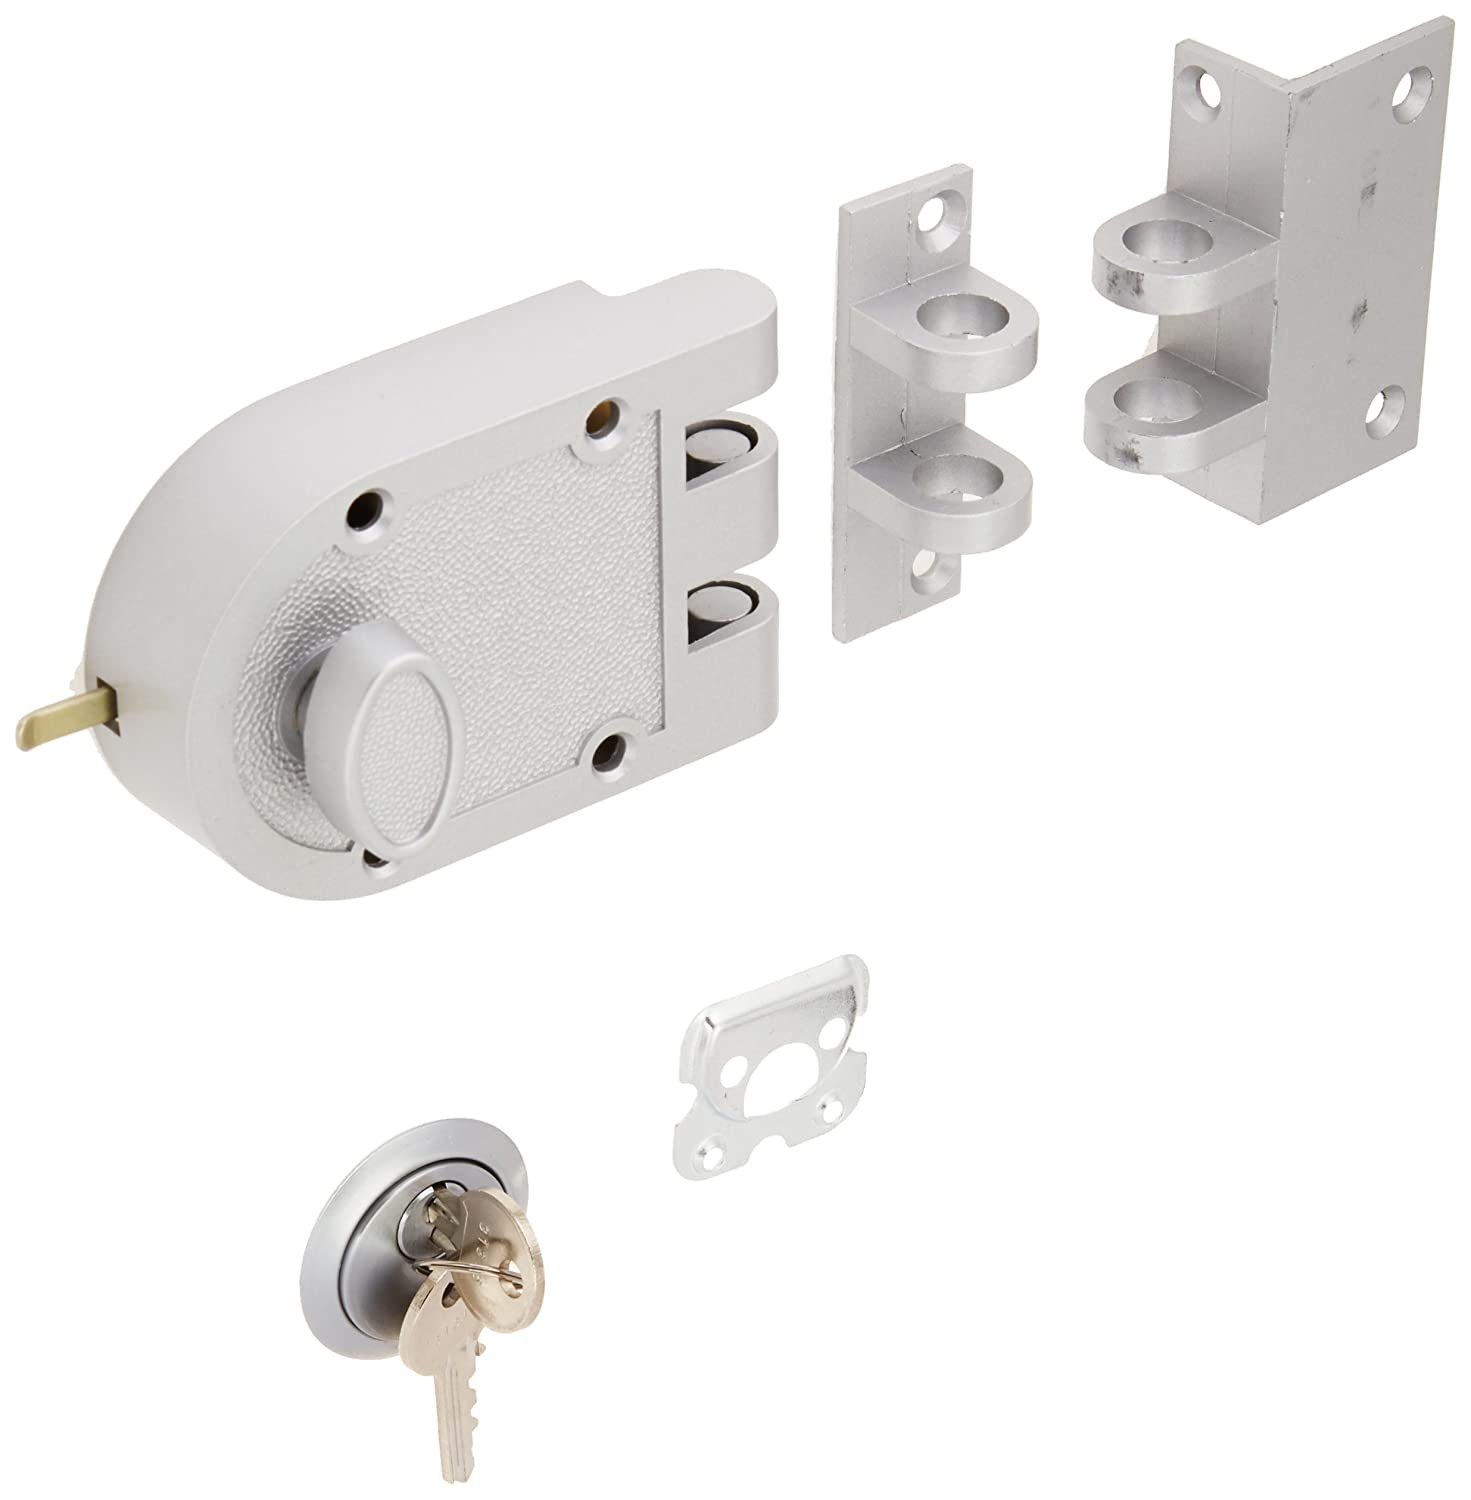 Guard Security Heavy Duty Jimmy Proof Deadbolt Door Lock, Silver, Single Cylinder with Key Entry #44861 Ultra Hardware